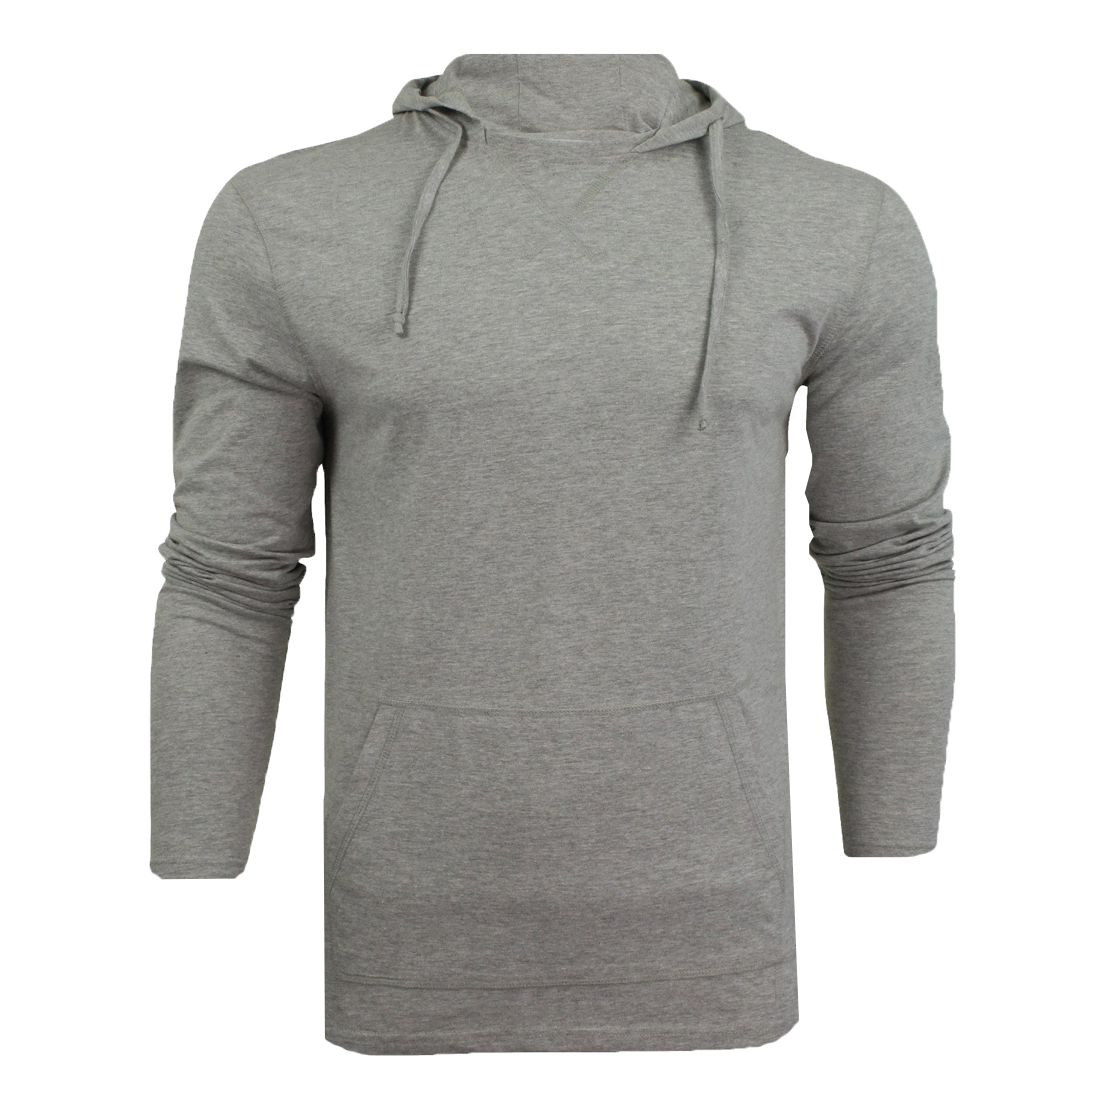 Mens Hooded Cotton Rich Track Top Hoodie S to 5XL Hoody By Brave Soul